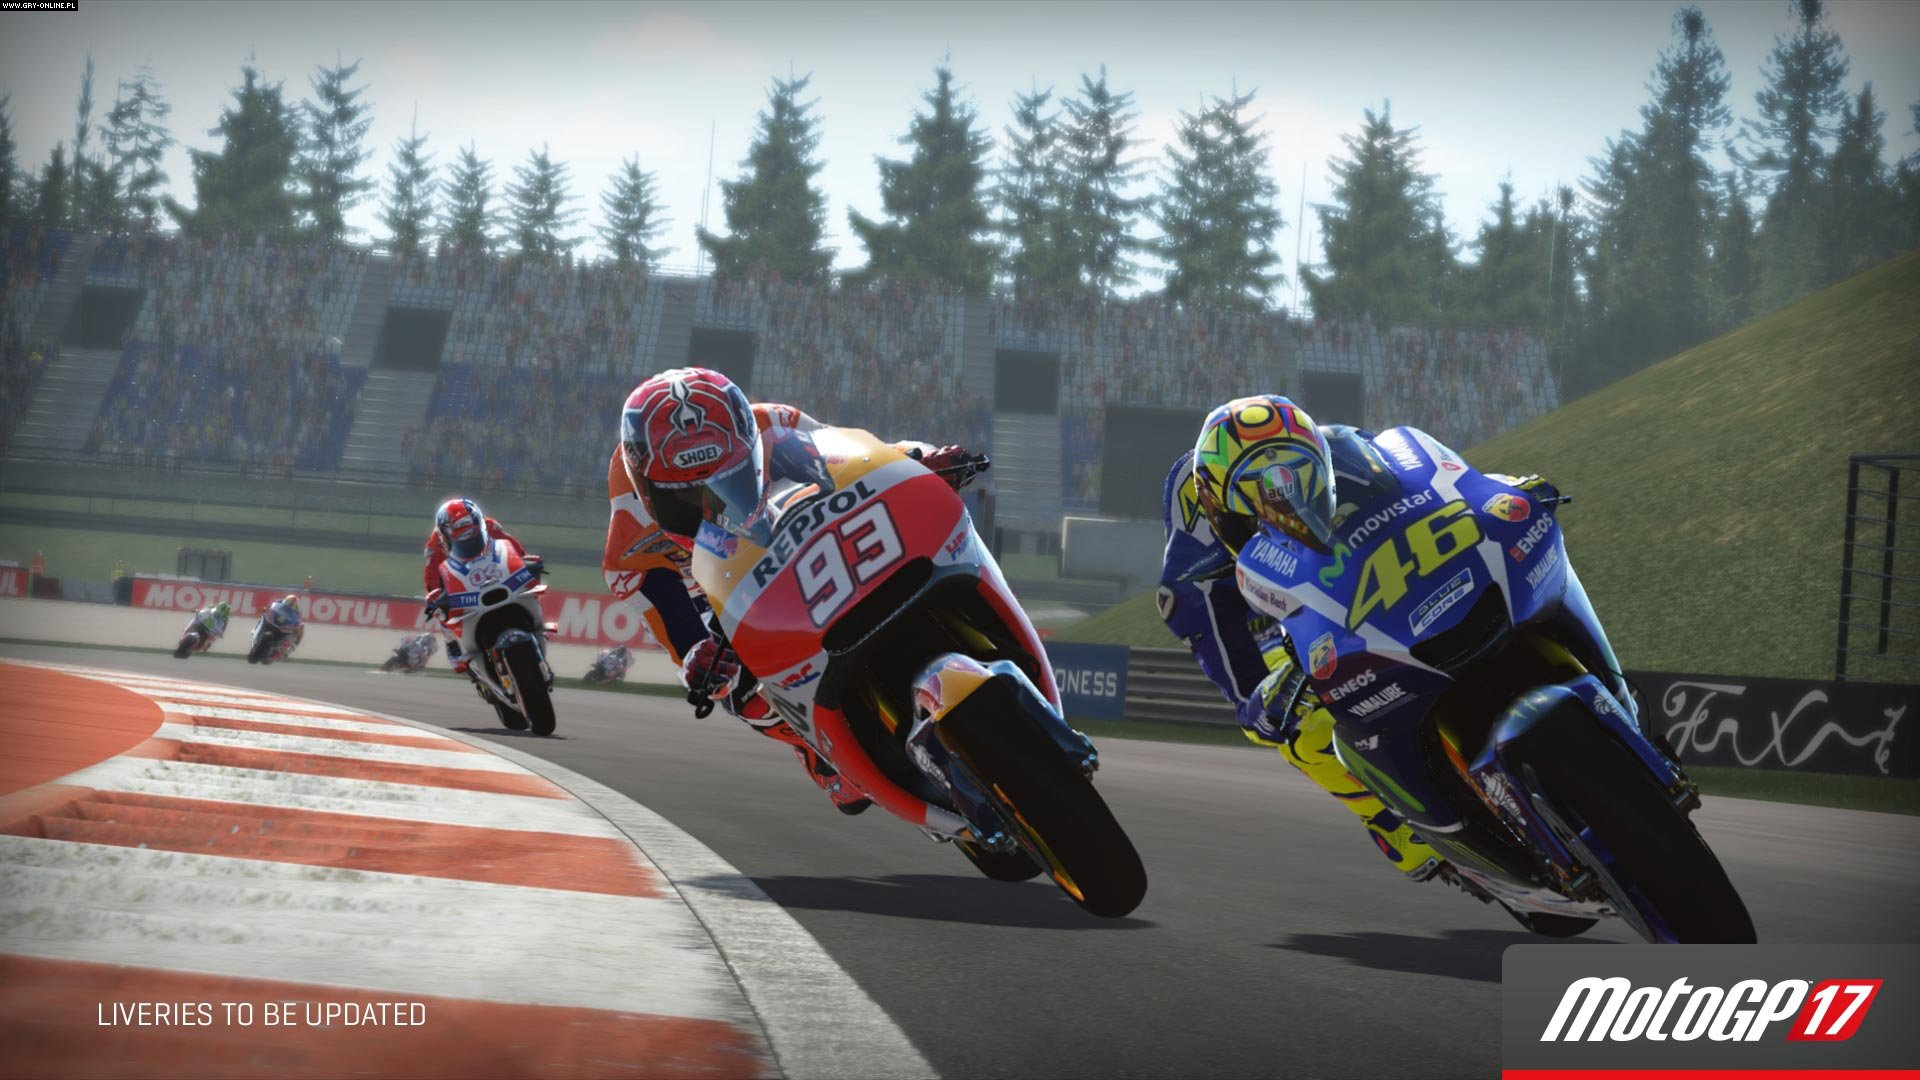 MotoGP 17 PC, PS4, XONE Gry Screen 71/71, Milestone